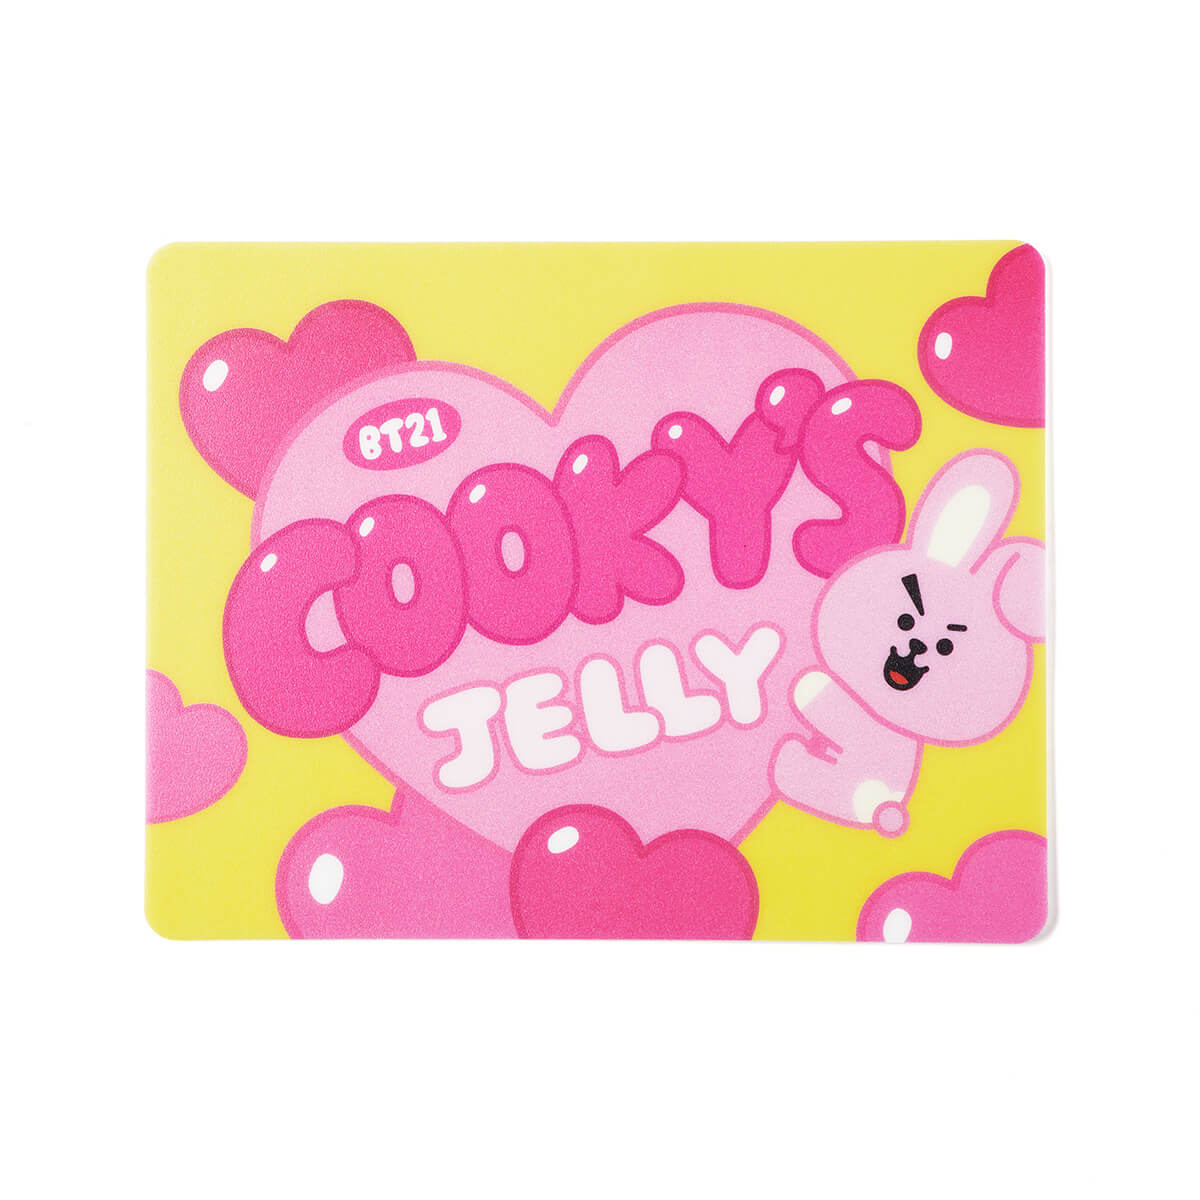 BT21 COOKY Sweet Mouse pad